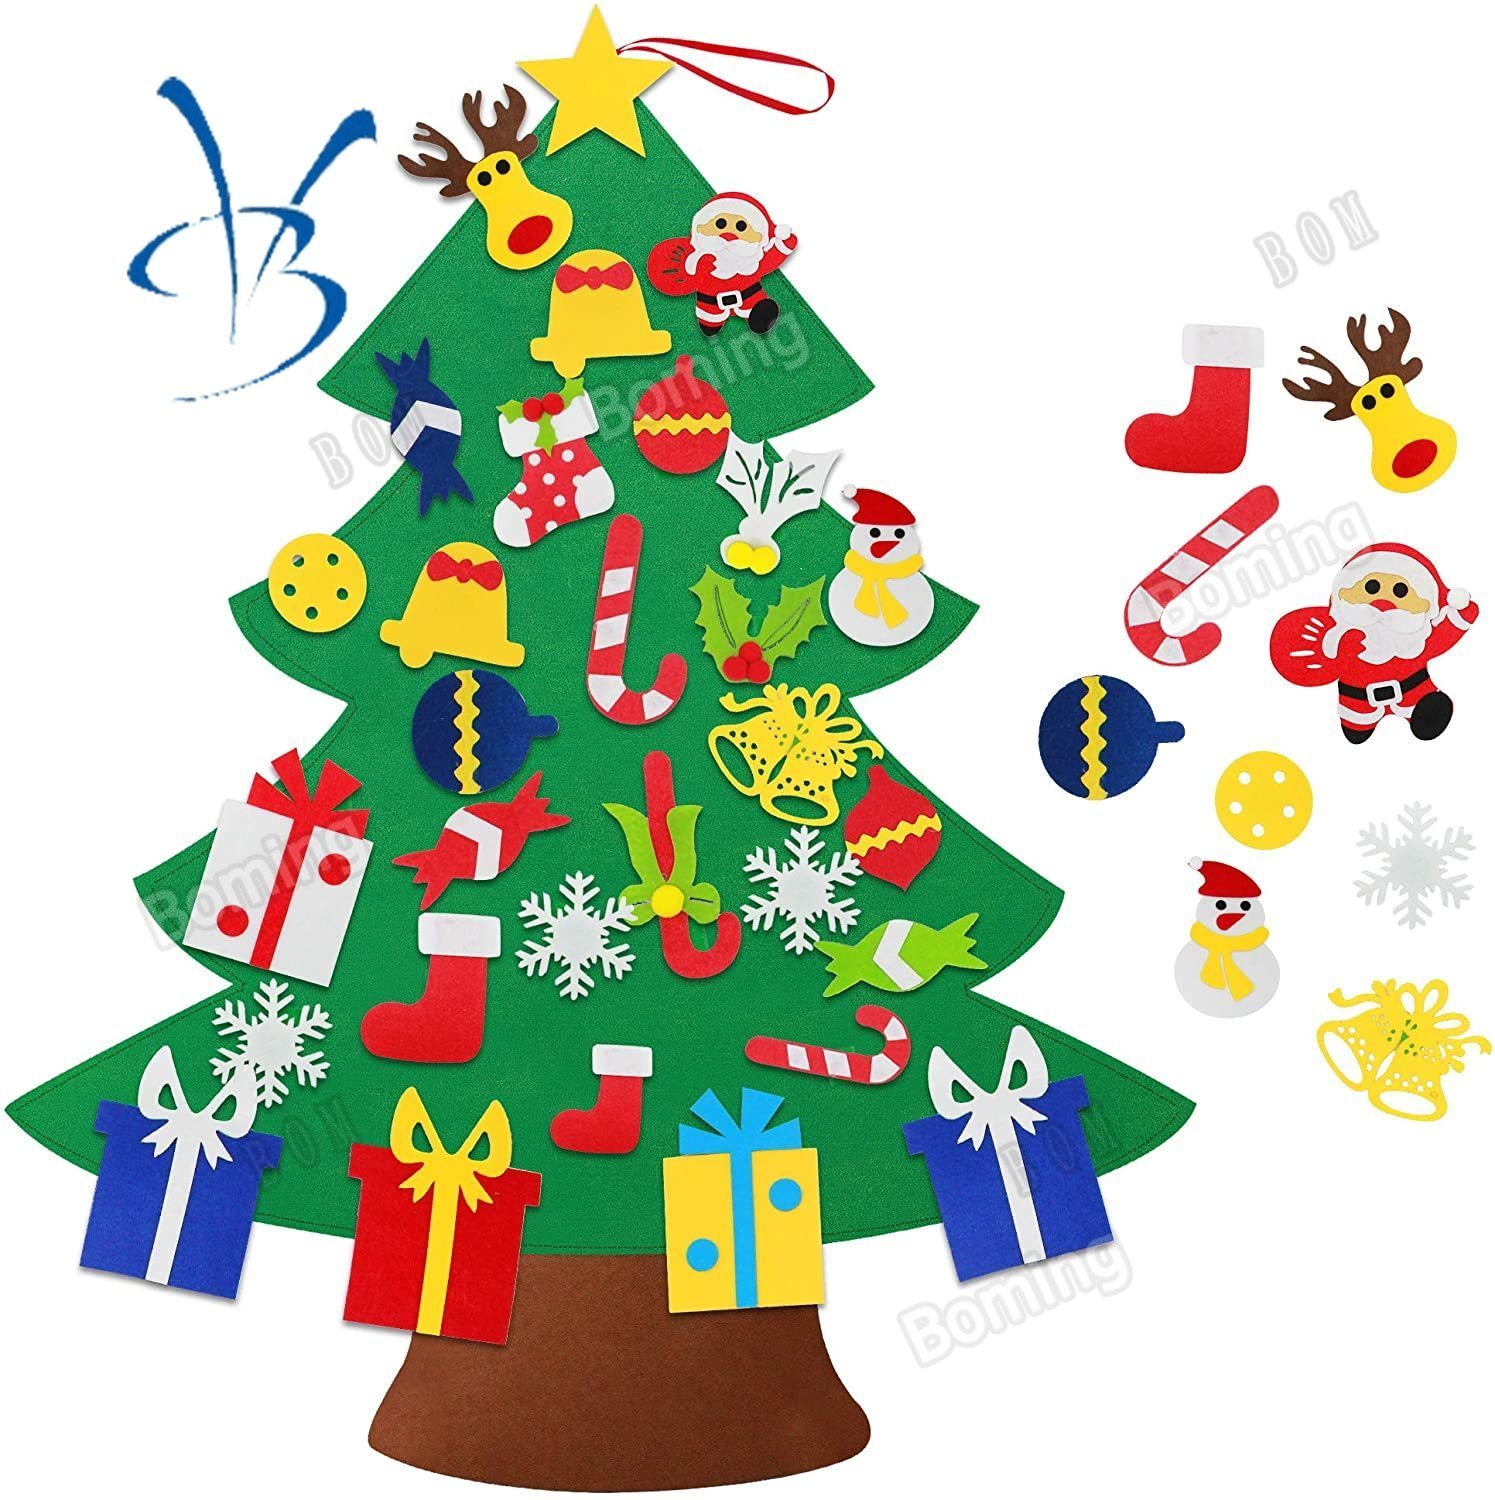 Diy Felt Christmas Tree 3 2ft Diy Xmas Trees For Toddlers With 30pcs Detachable Felt Hanging Ornaments Kids Xmas Gift Christmas New Year Wall Hanging Decorations Shopee Singapore